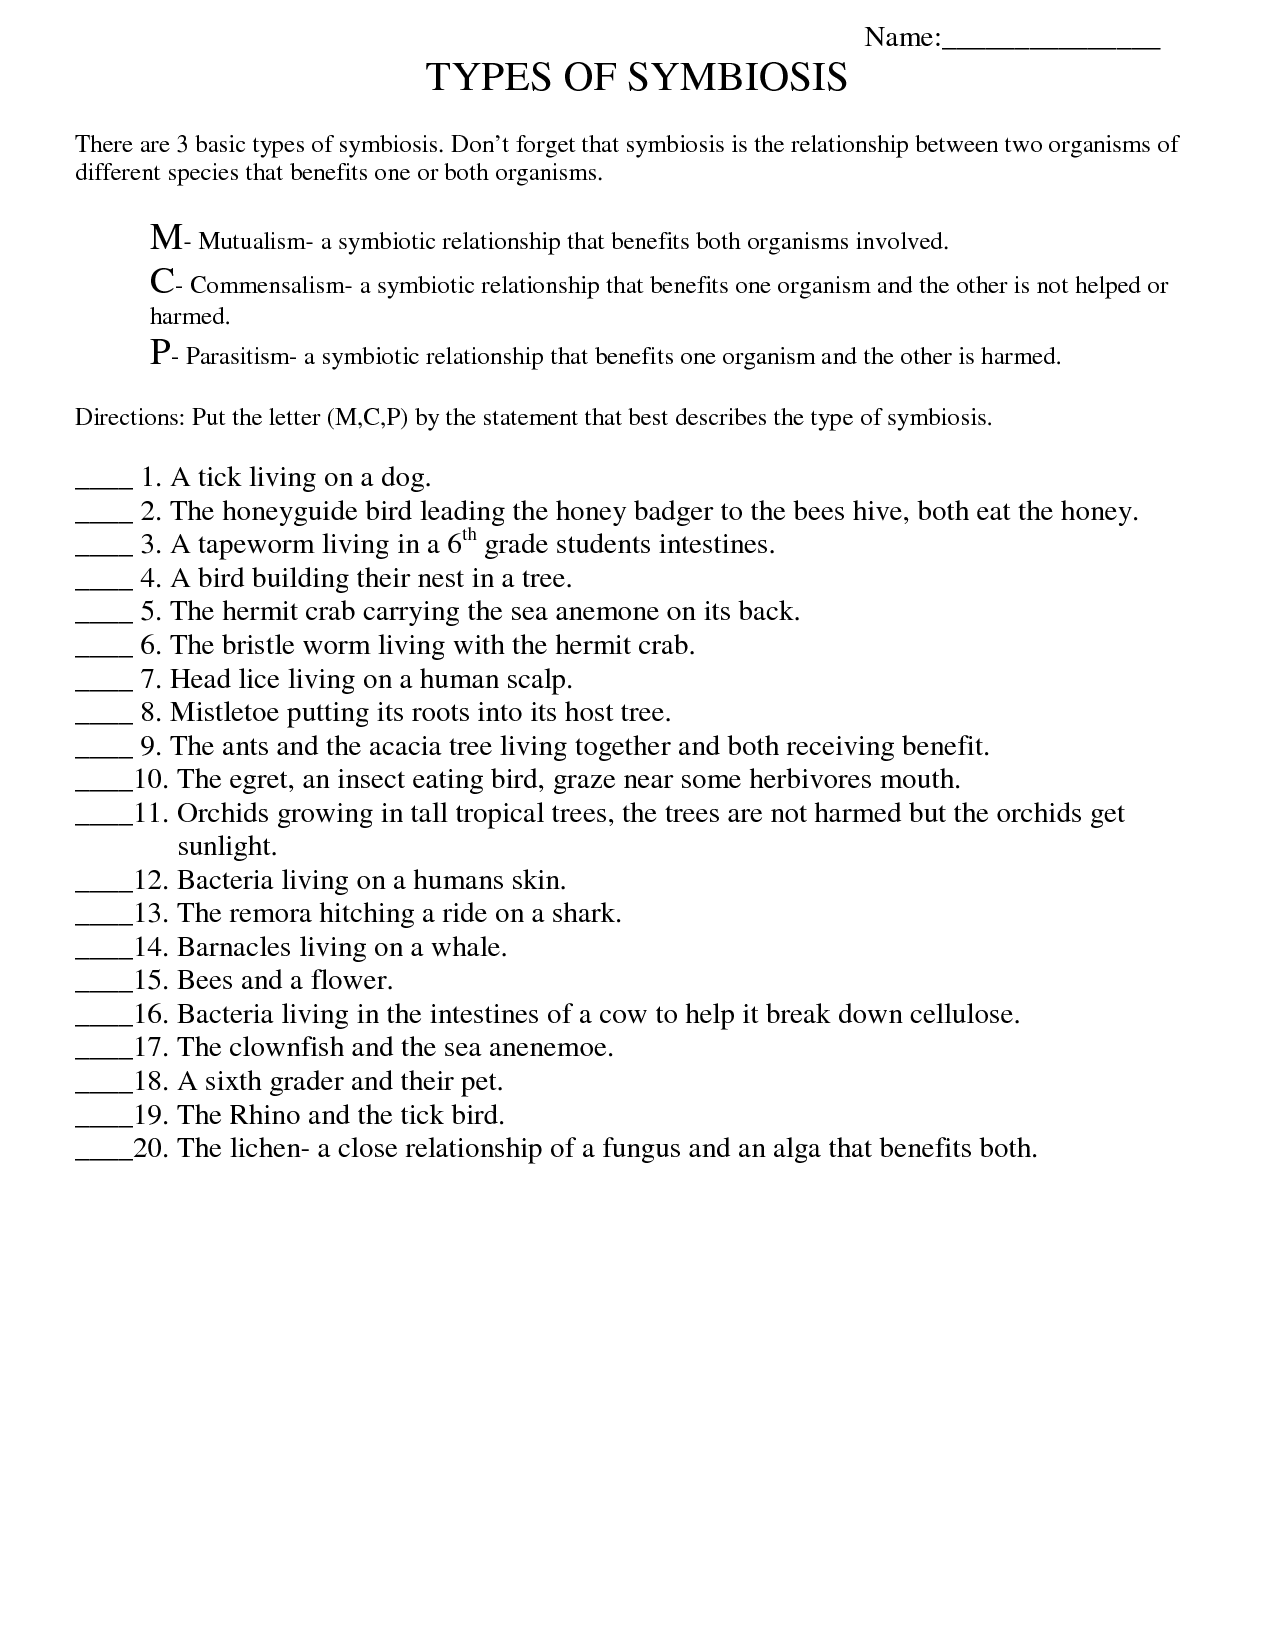 Worksheets Symbiotic Relationships Worksheet collection of symbiotic relationship worksheet sharebrowse sharebrowse